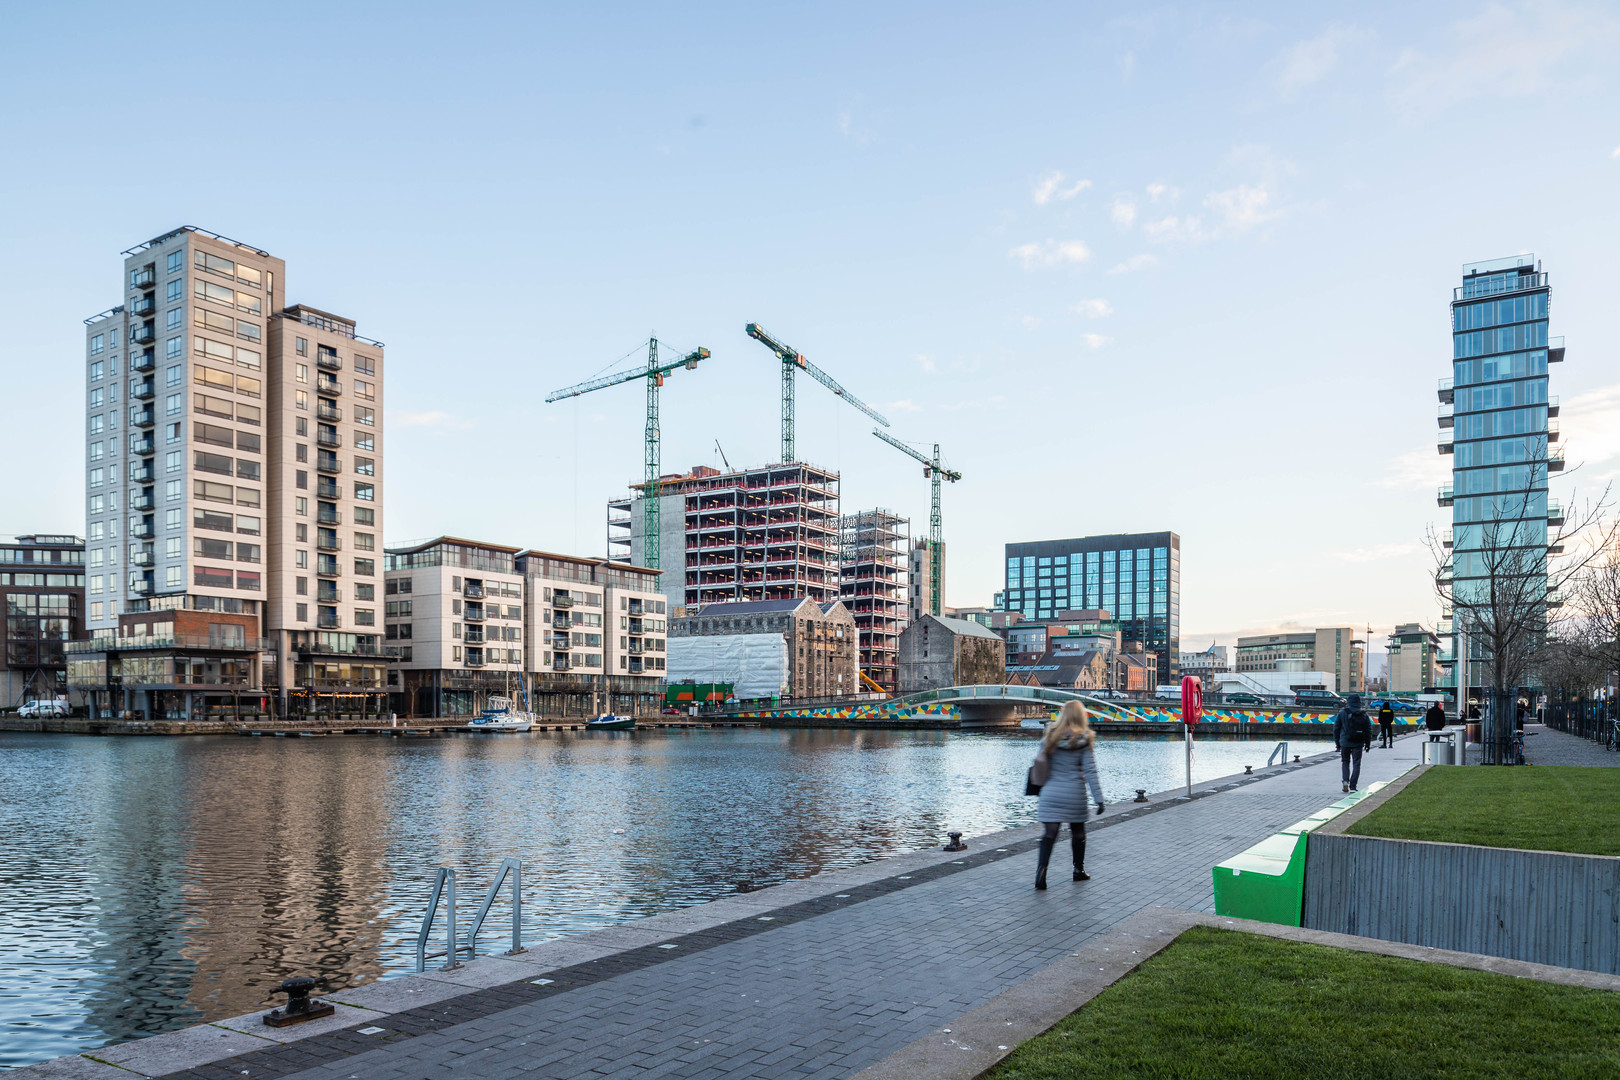 People walk along the Grand Canal Dock with Millenium Tower, Boland Mills, Montevetro and Alto vetro in the background